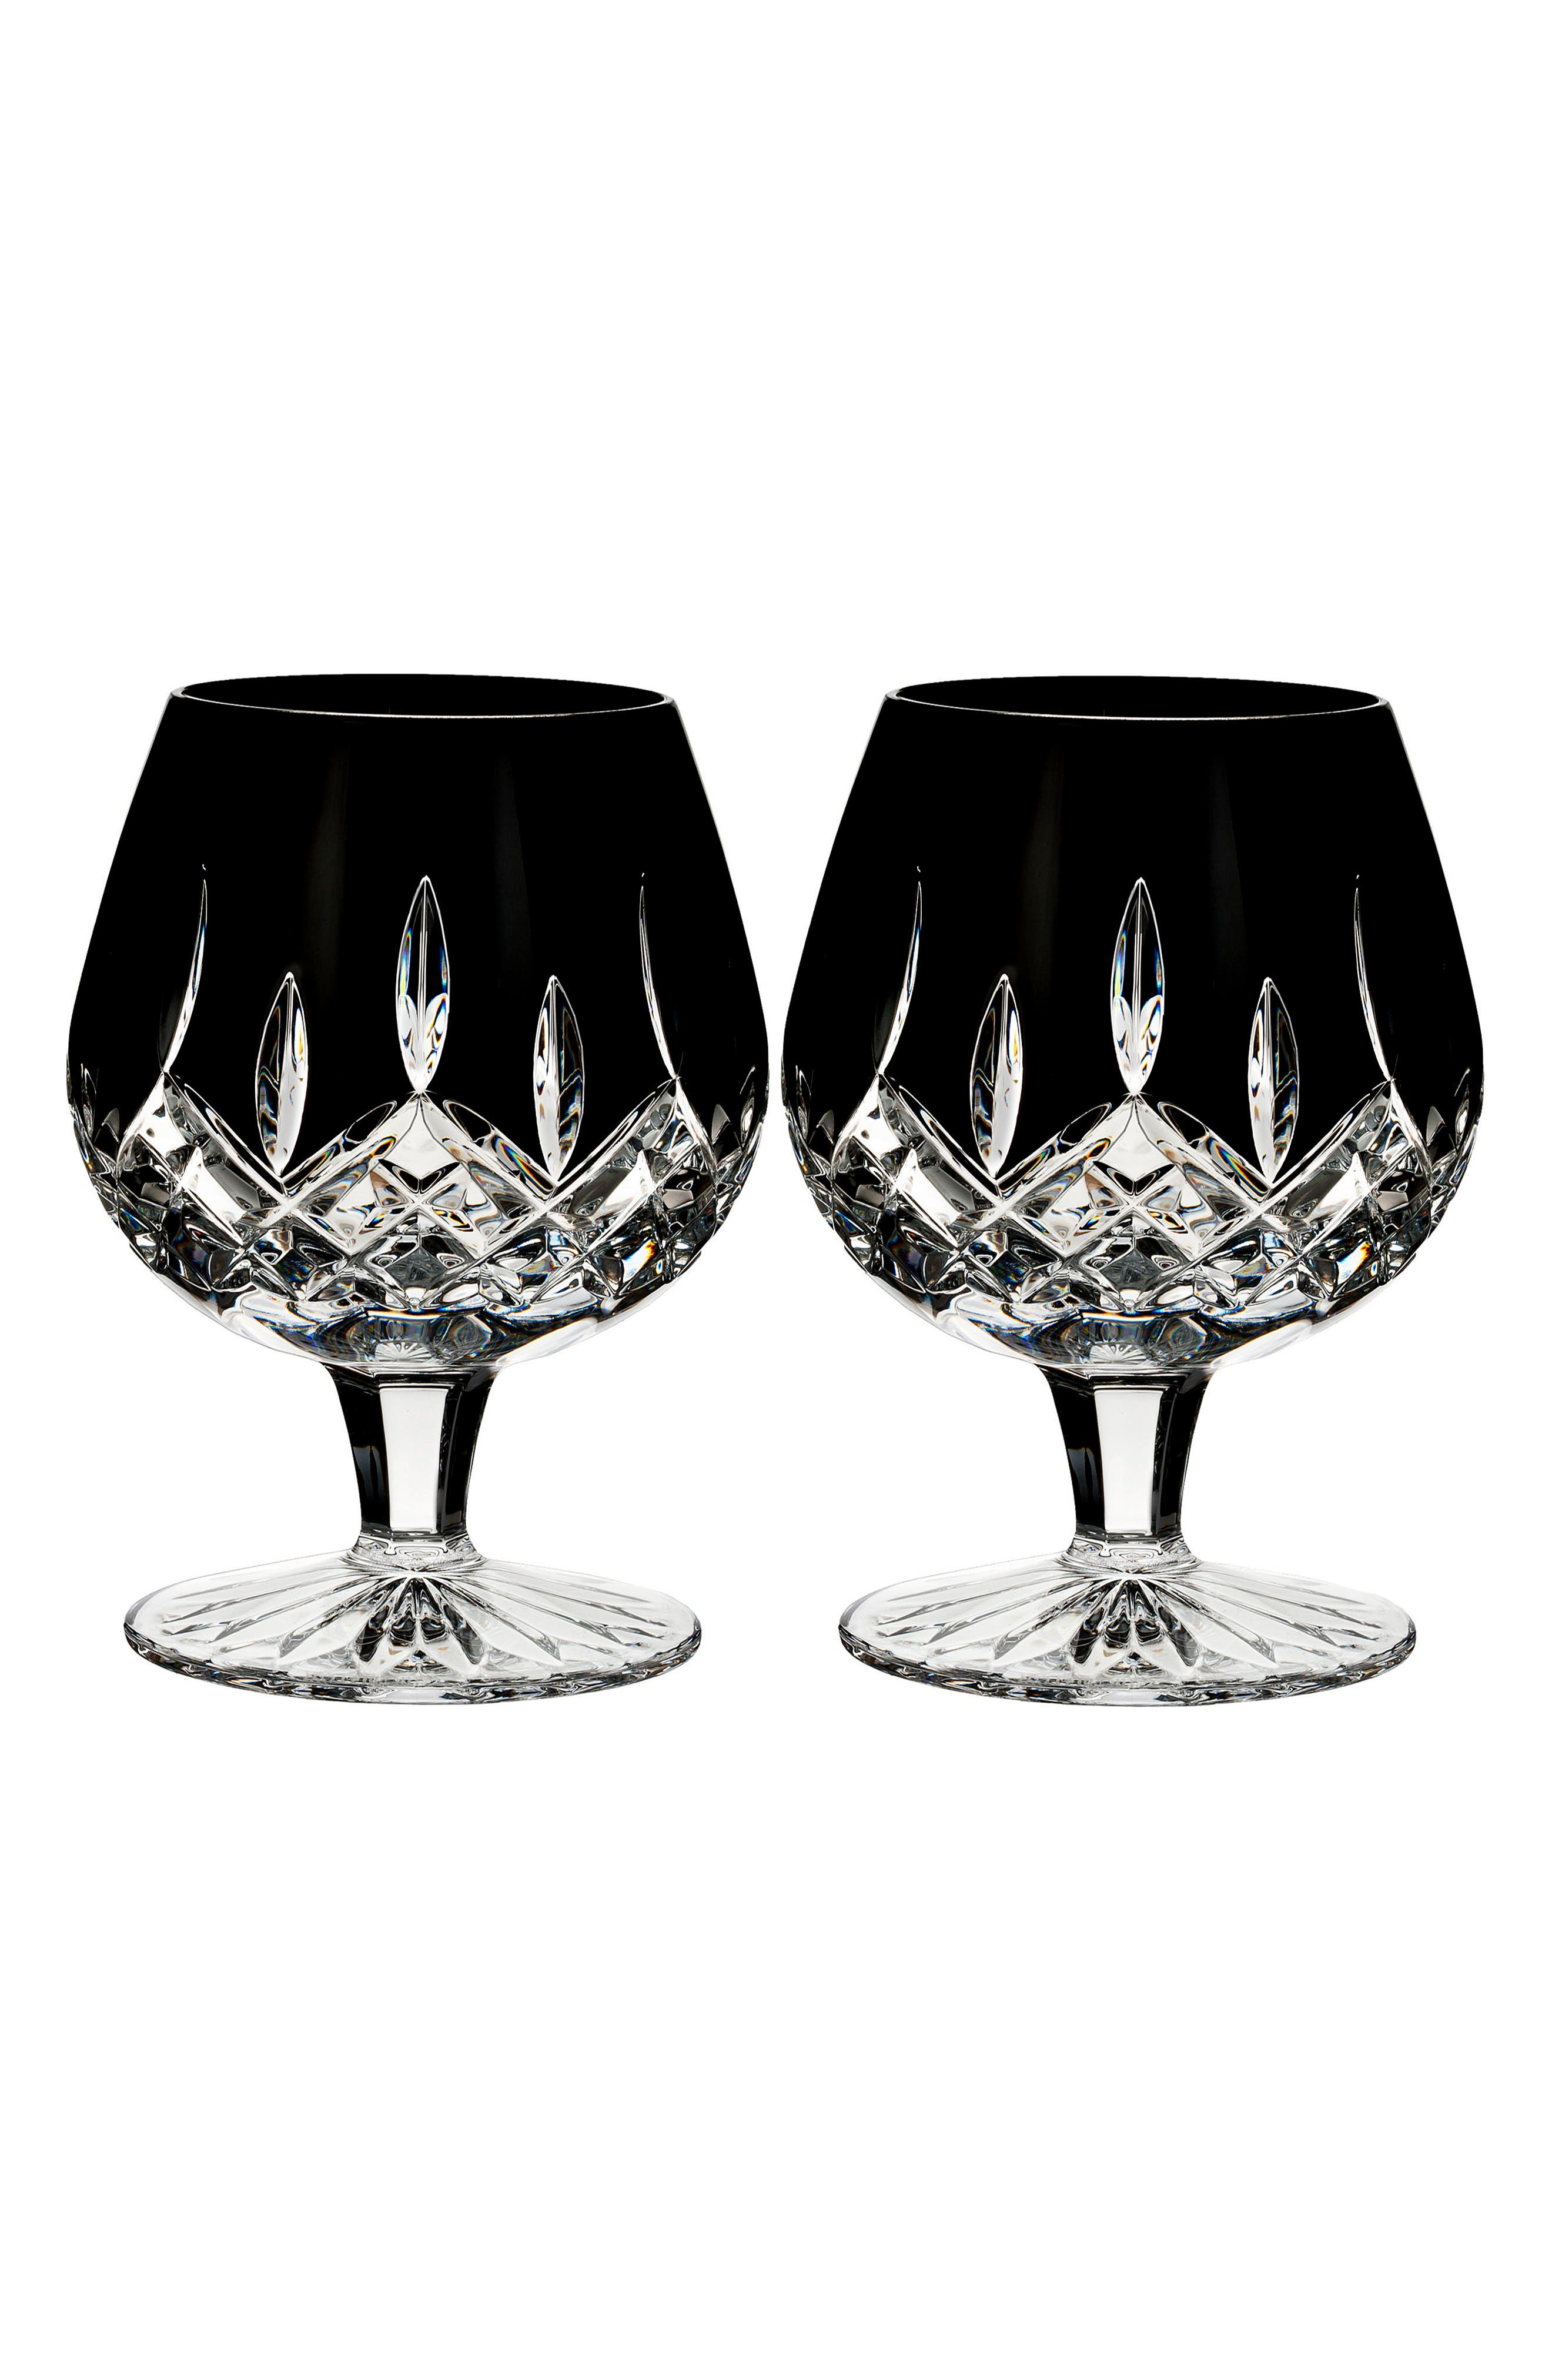 Lismore Diamond Set of 2 Black Lead Crystal Brandy Glasses,                         Main,                         color,